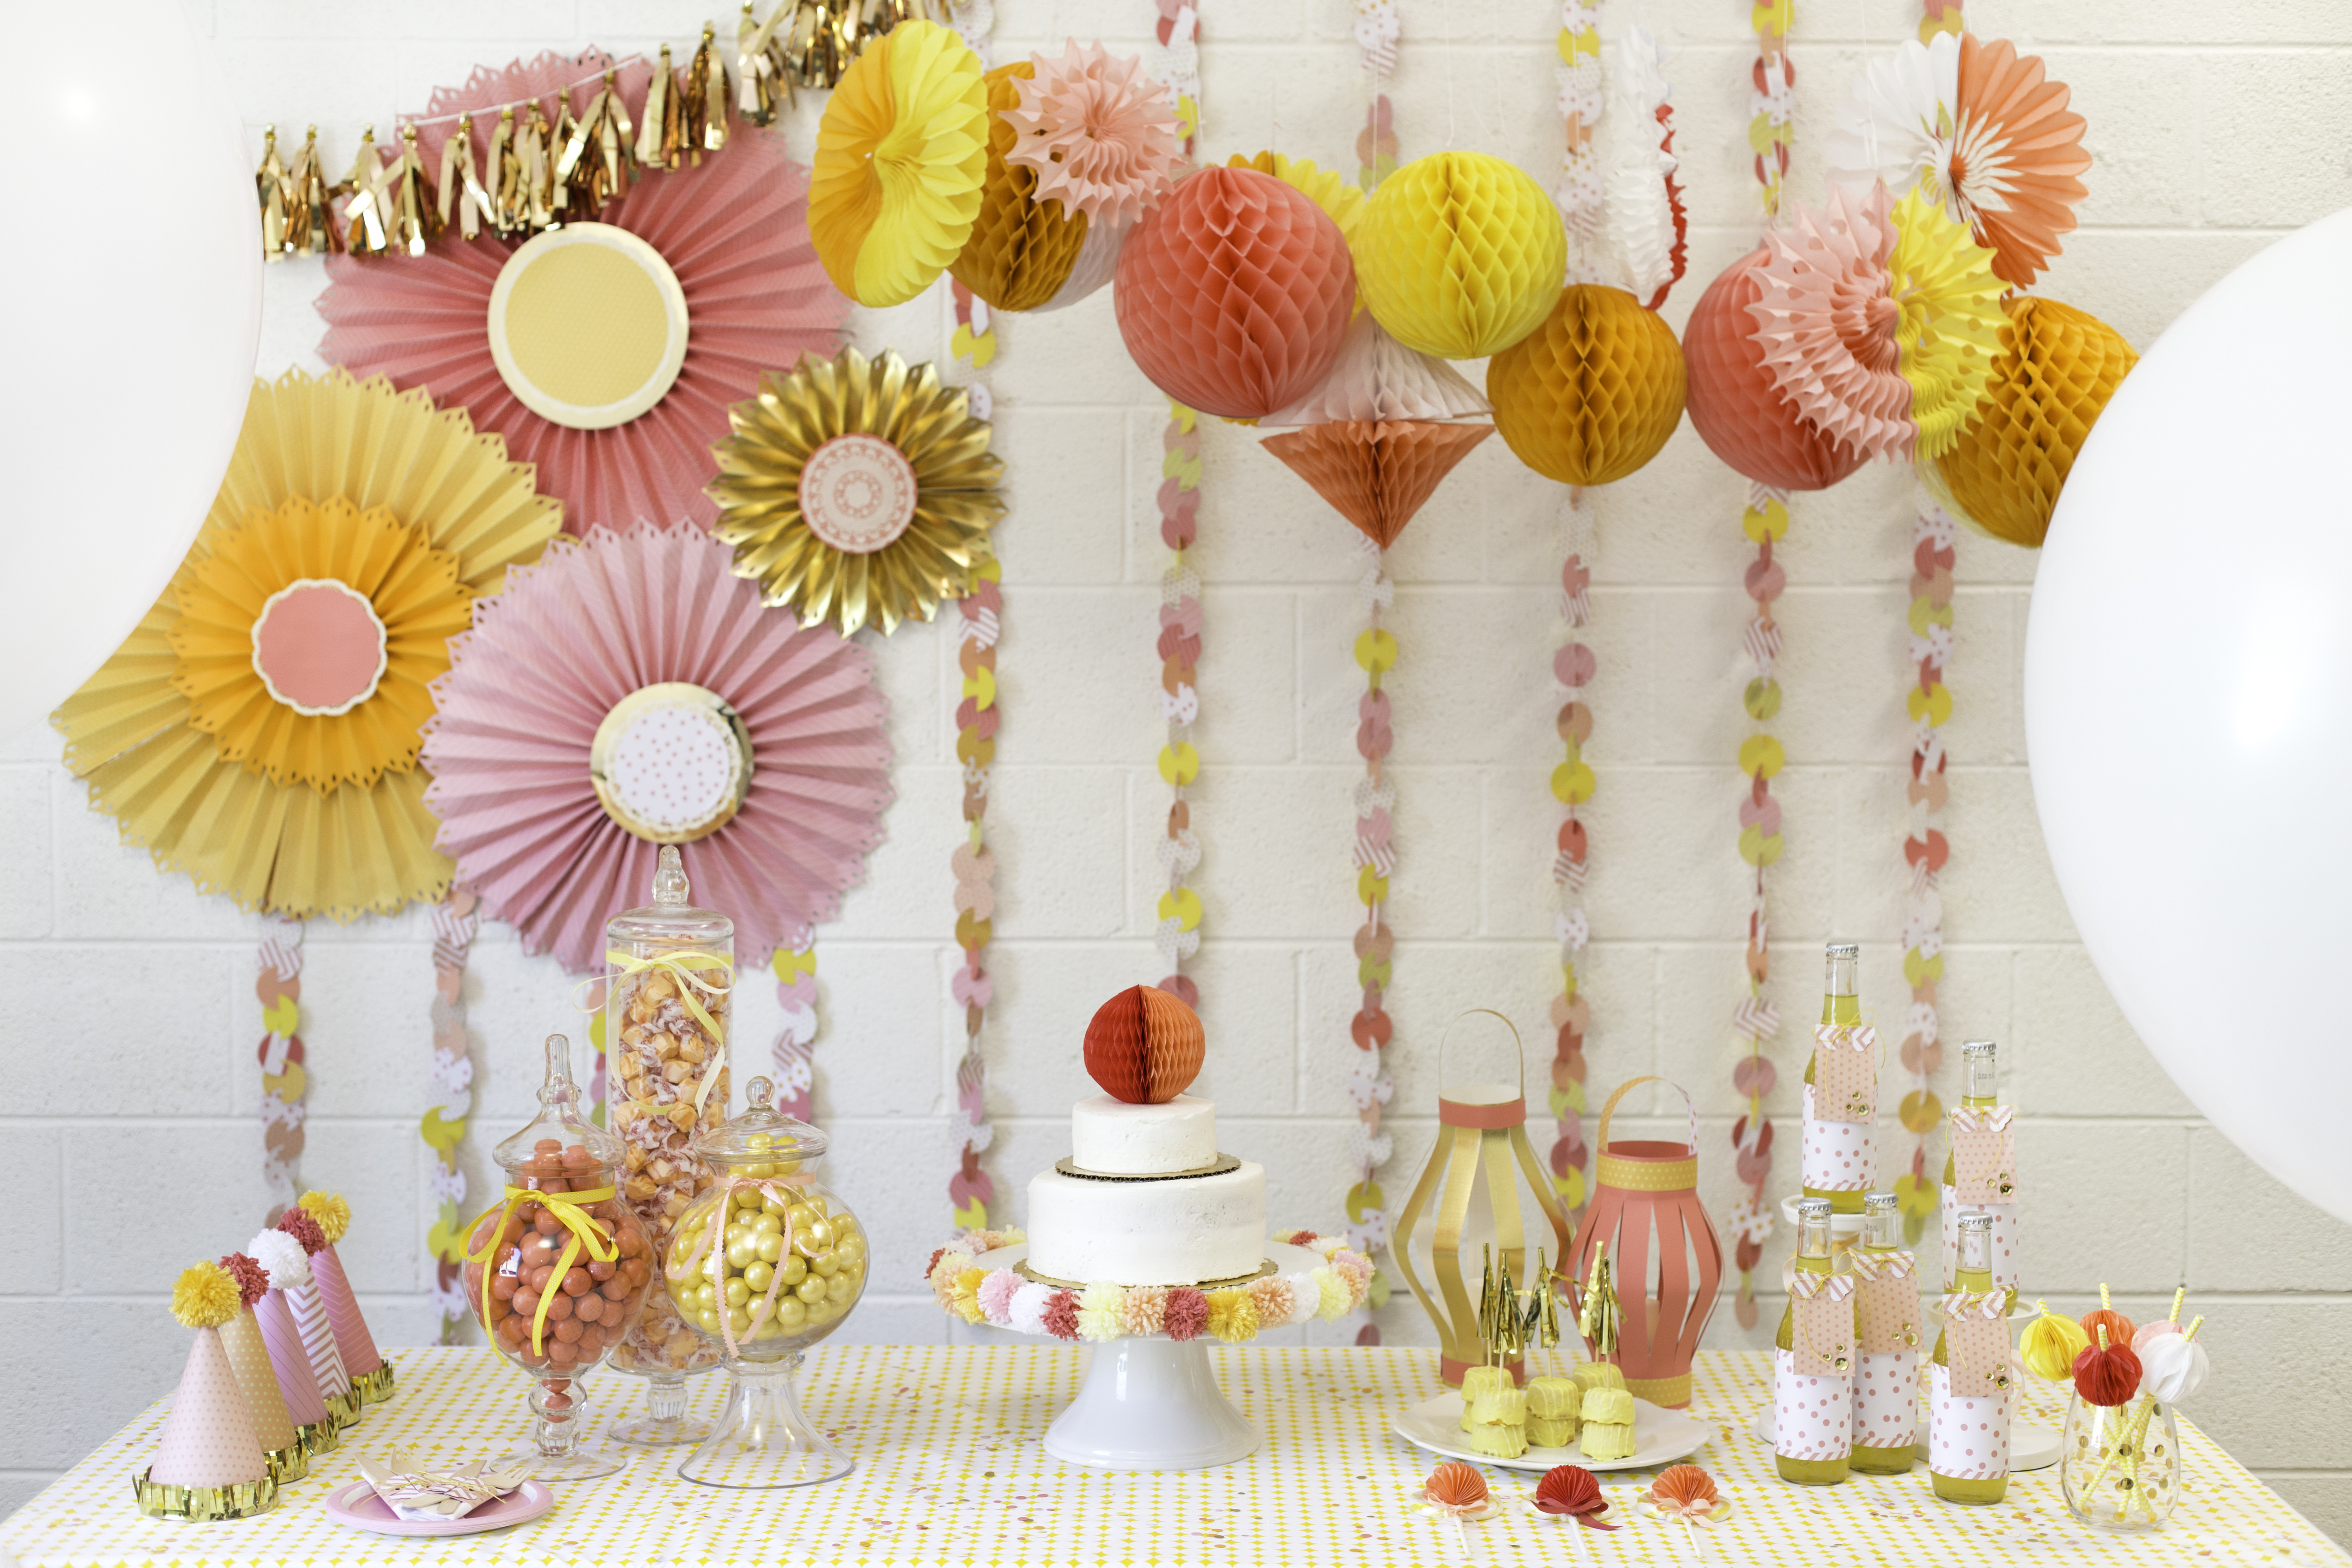 Best ideas about Diy Birthday Decor . Save or Pin DIY Party Decor Now.